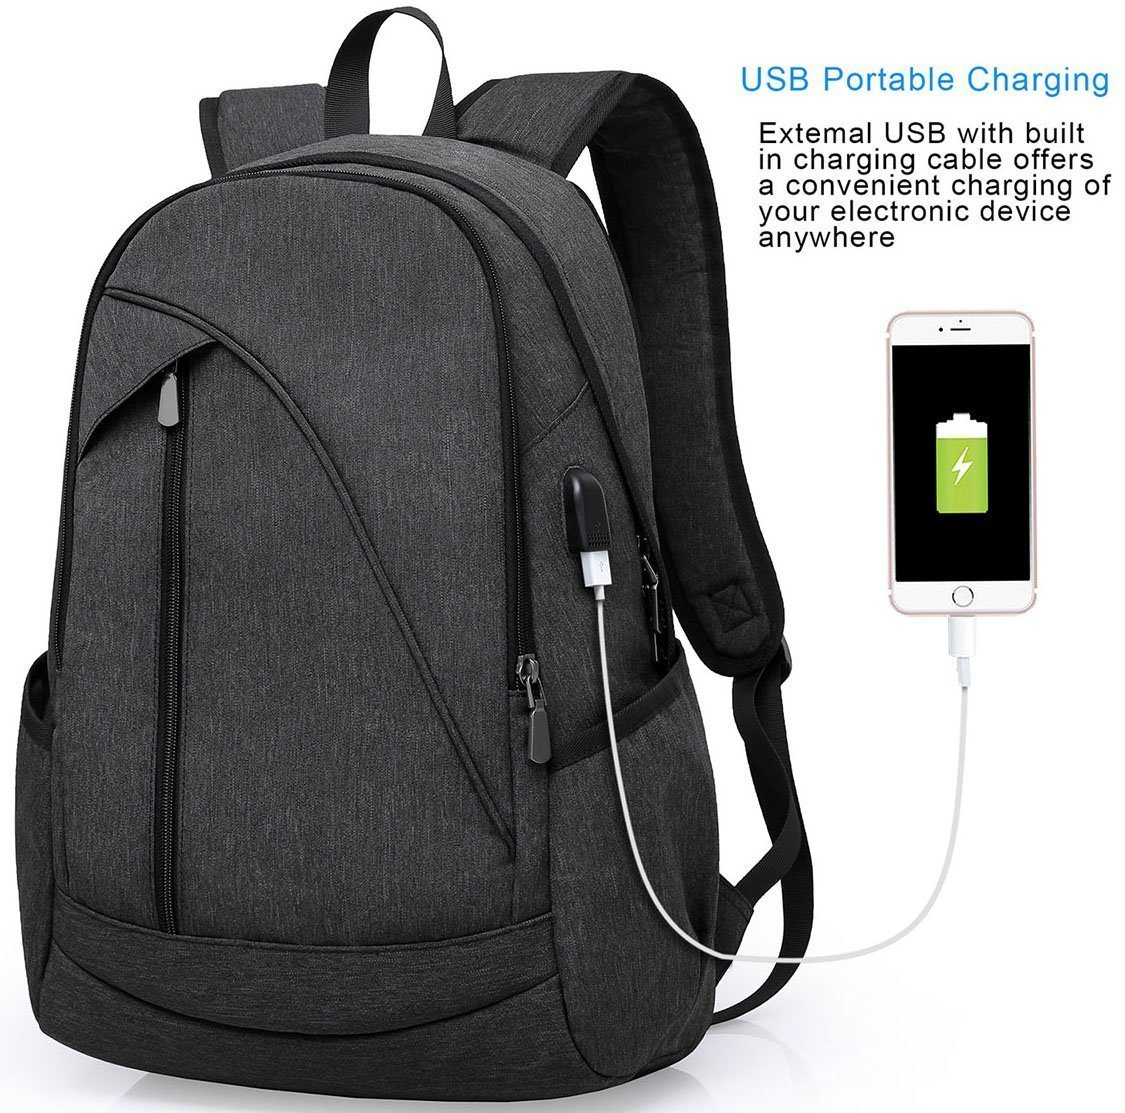 Tocode Water Resistant Laptop Backpack with USB Charging Port Fits up to 15.6-Inch Laptop and Notebook Black Tocode_2225